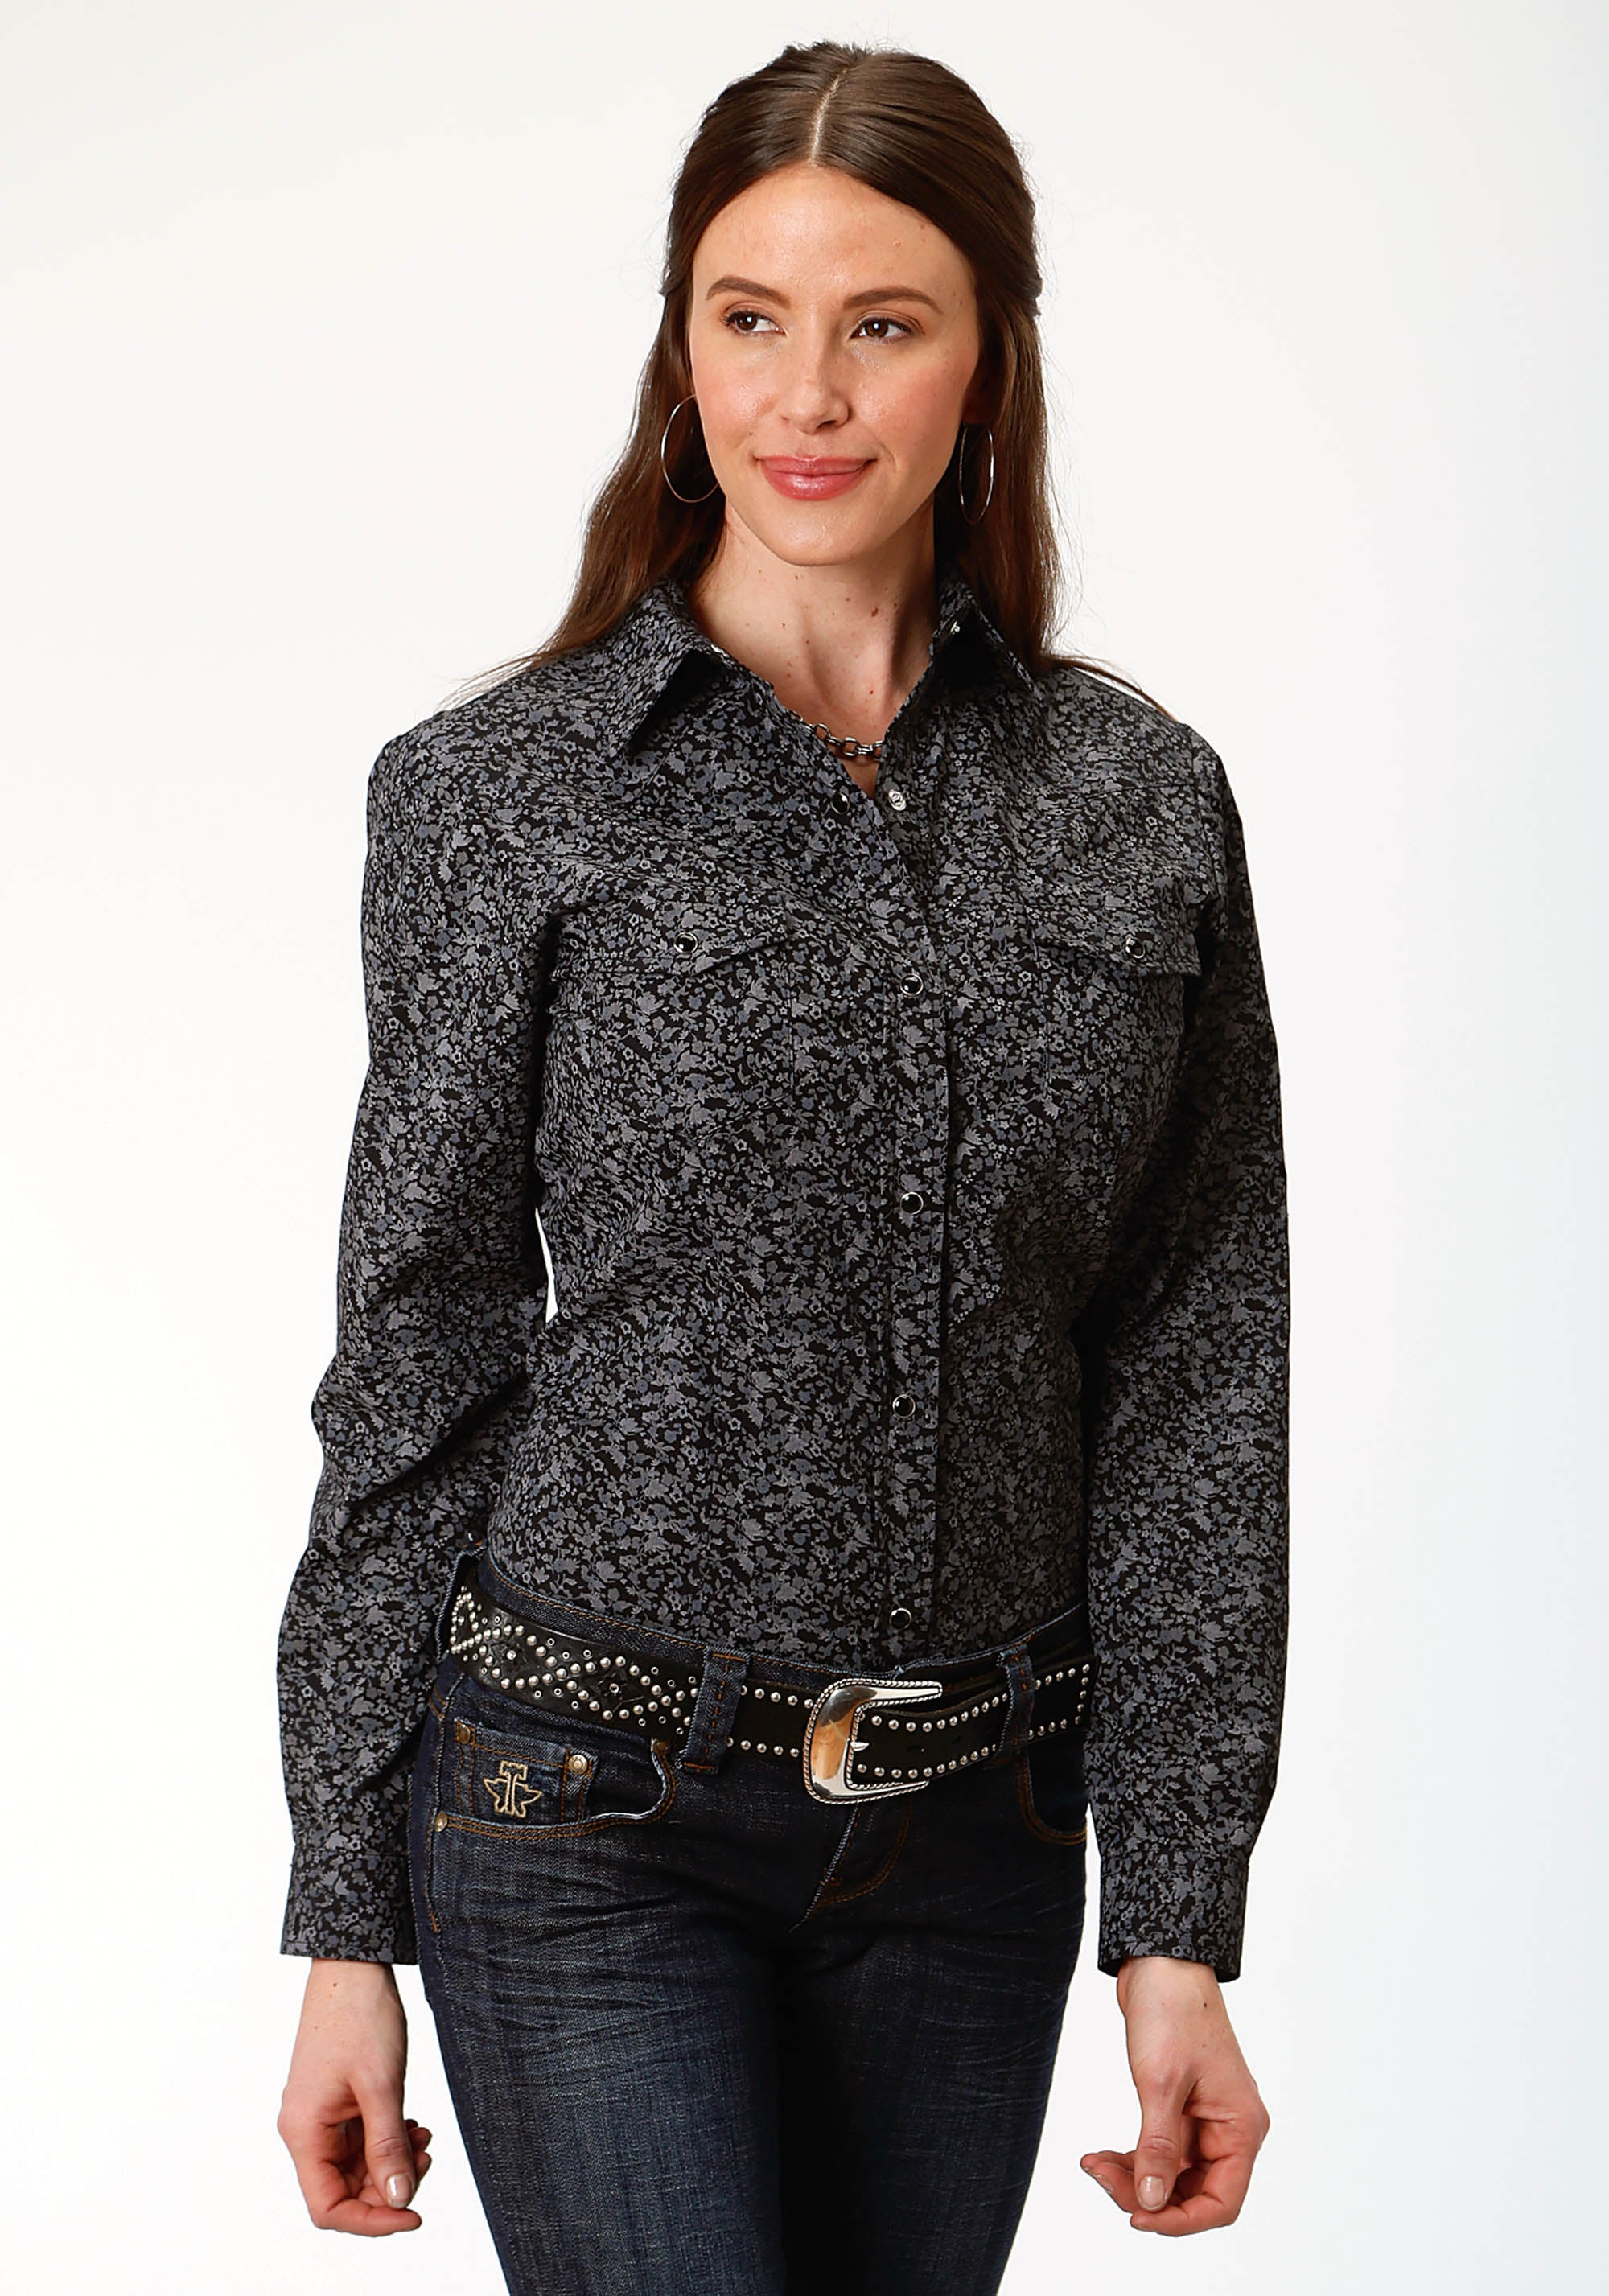 ROPER WOMENS BLACK 9895 BLACK GROUND FLORAL KARMAN CLASSICS- 55/45 PRINT LONG SLEEVE